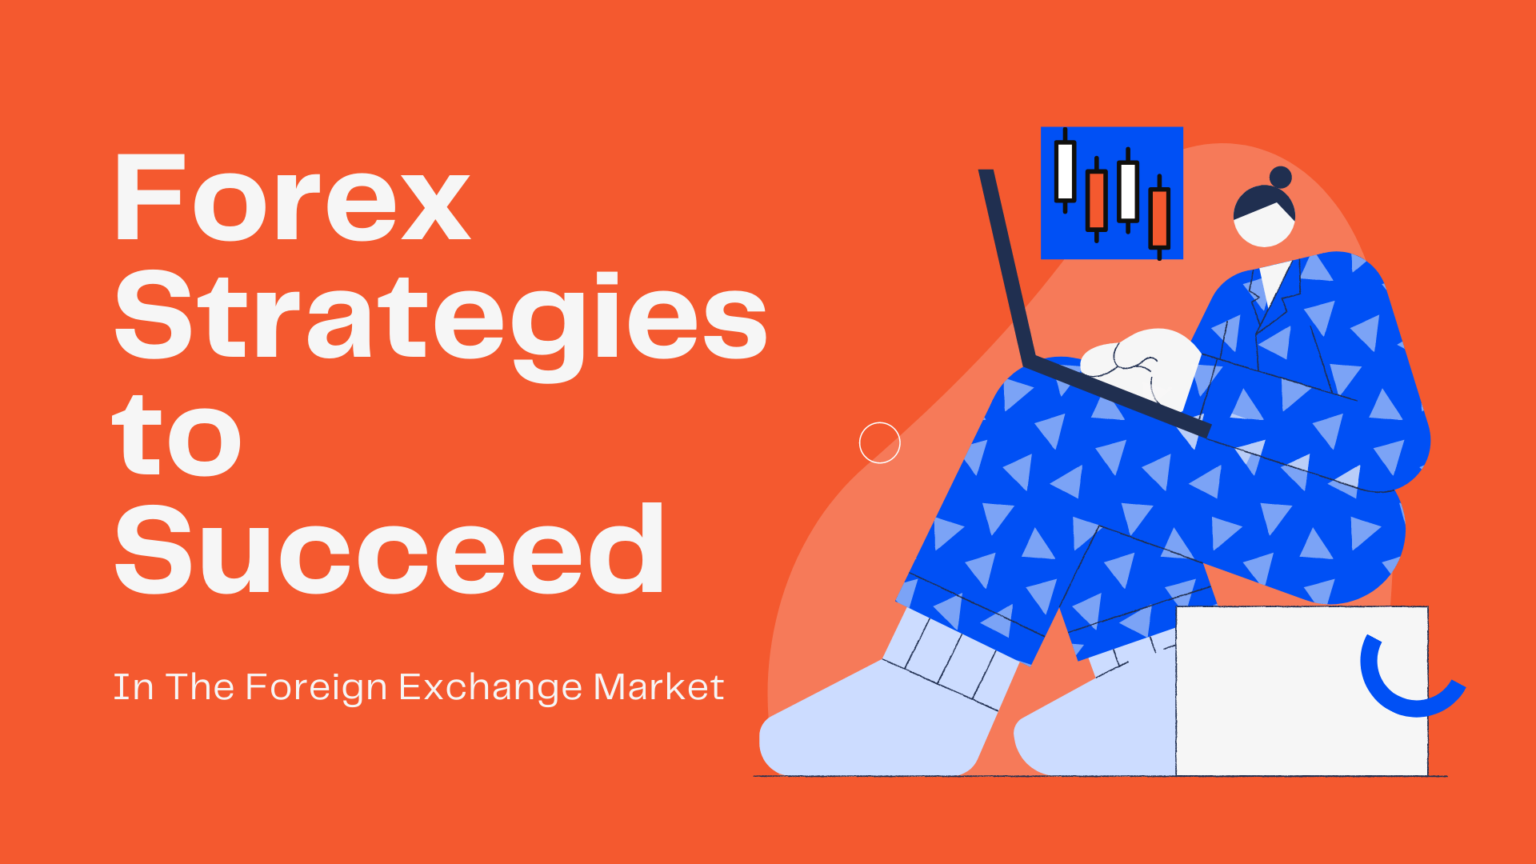 Forex Strategies to Succeed in the Foreign Exchange Market